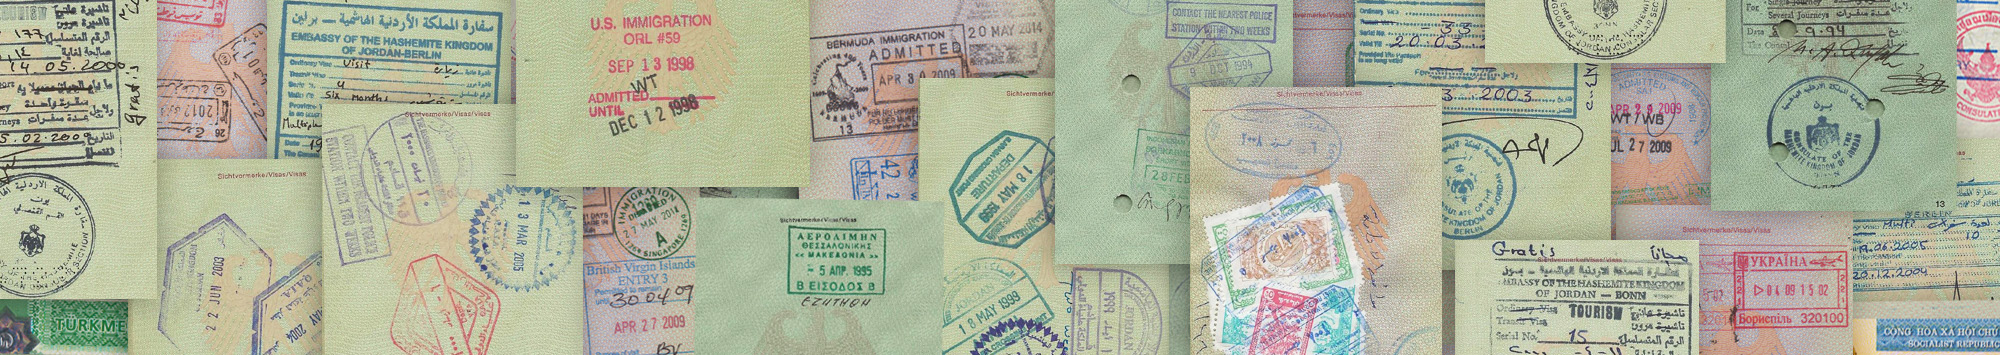 Internationale Visa